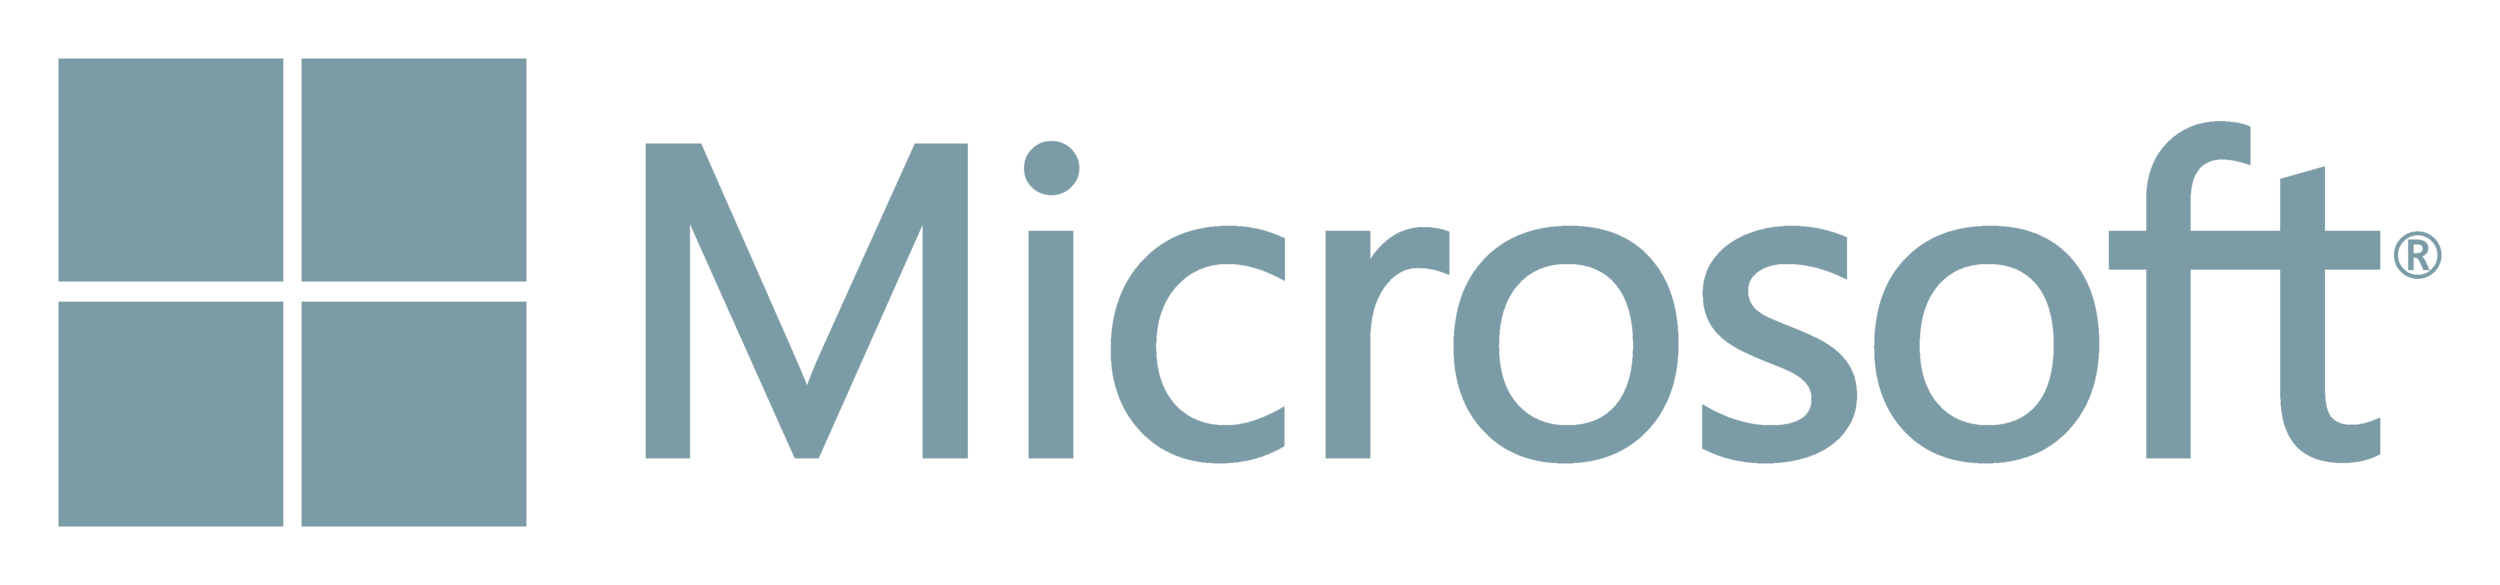 Microsoft logo color.png